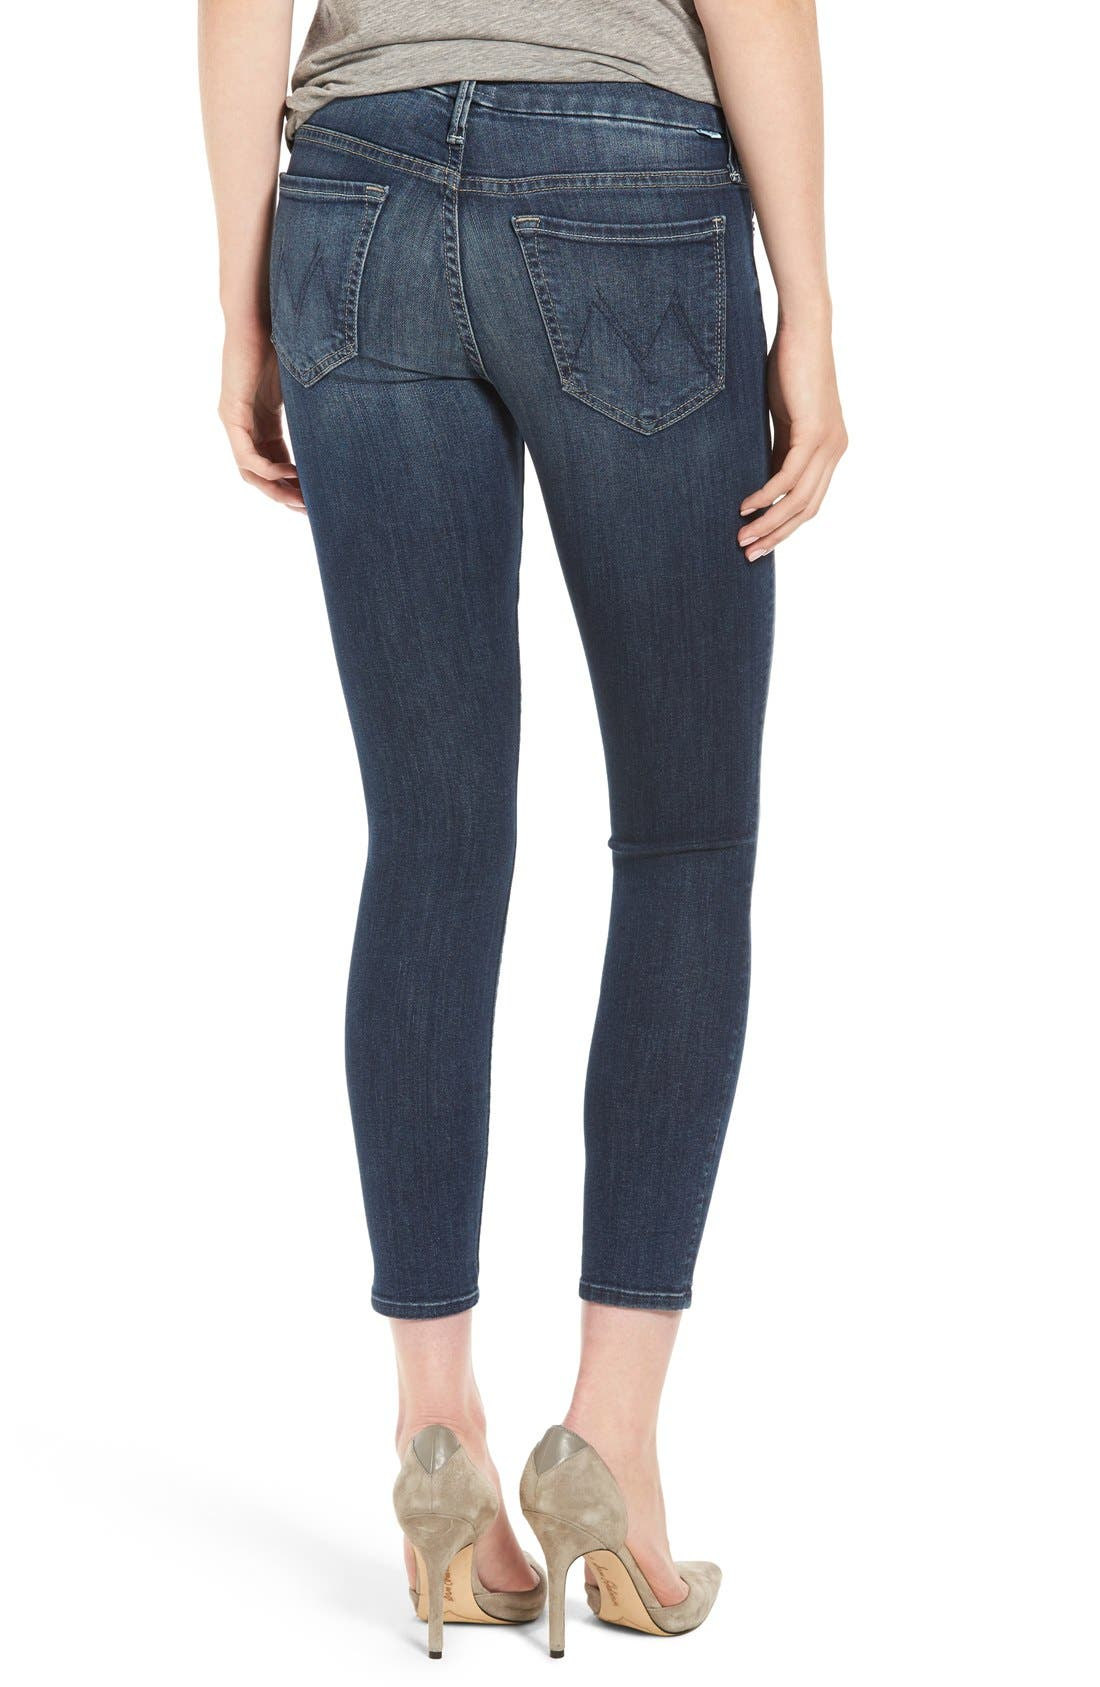 'The Looker' Crop Skinny Jeans,                             Alternate thumbnail 5, color,                             439